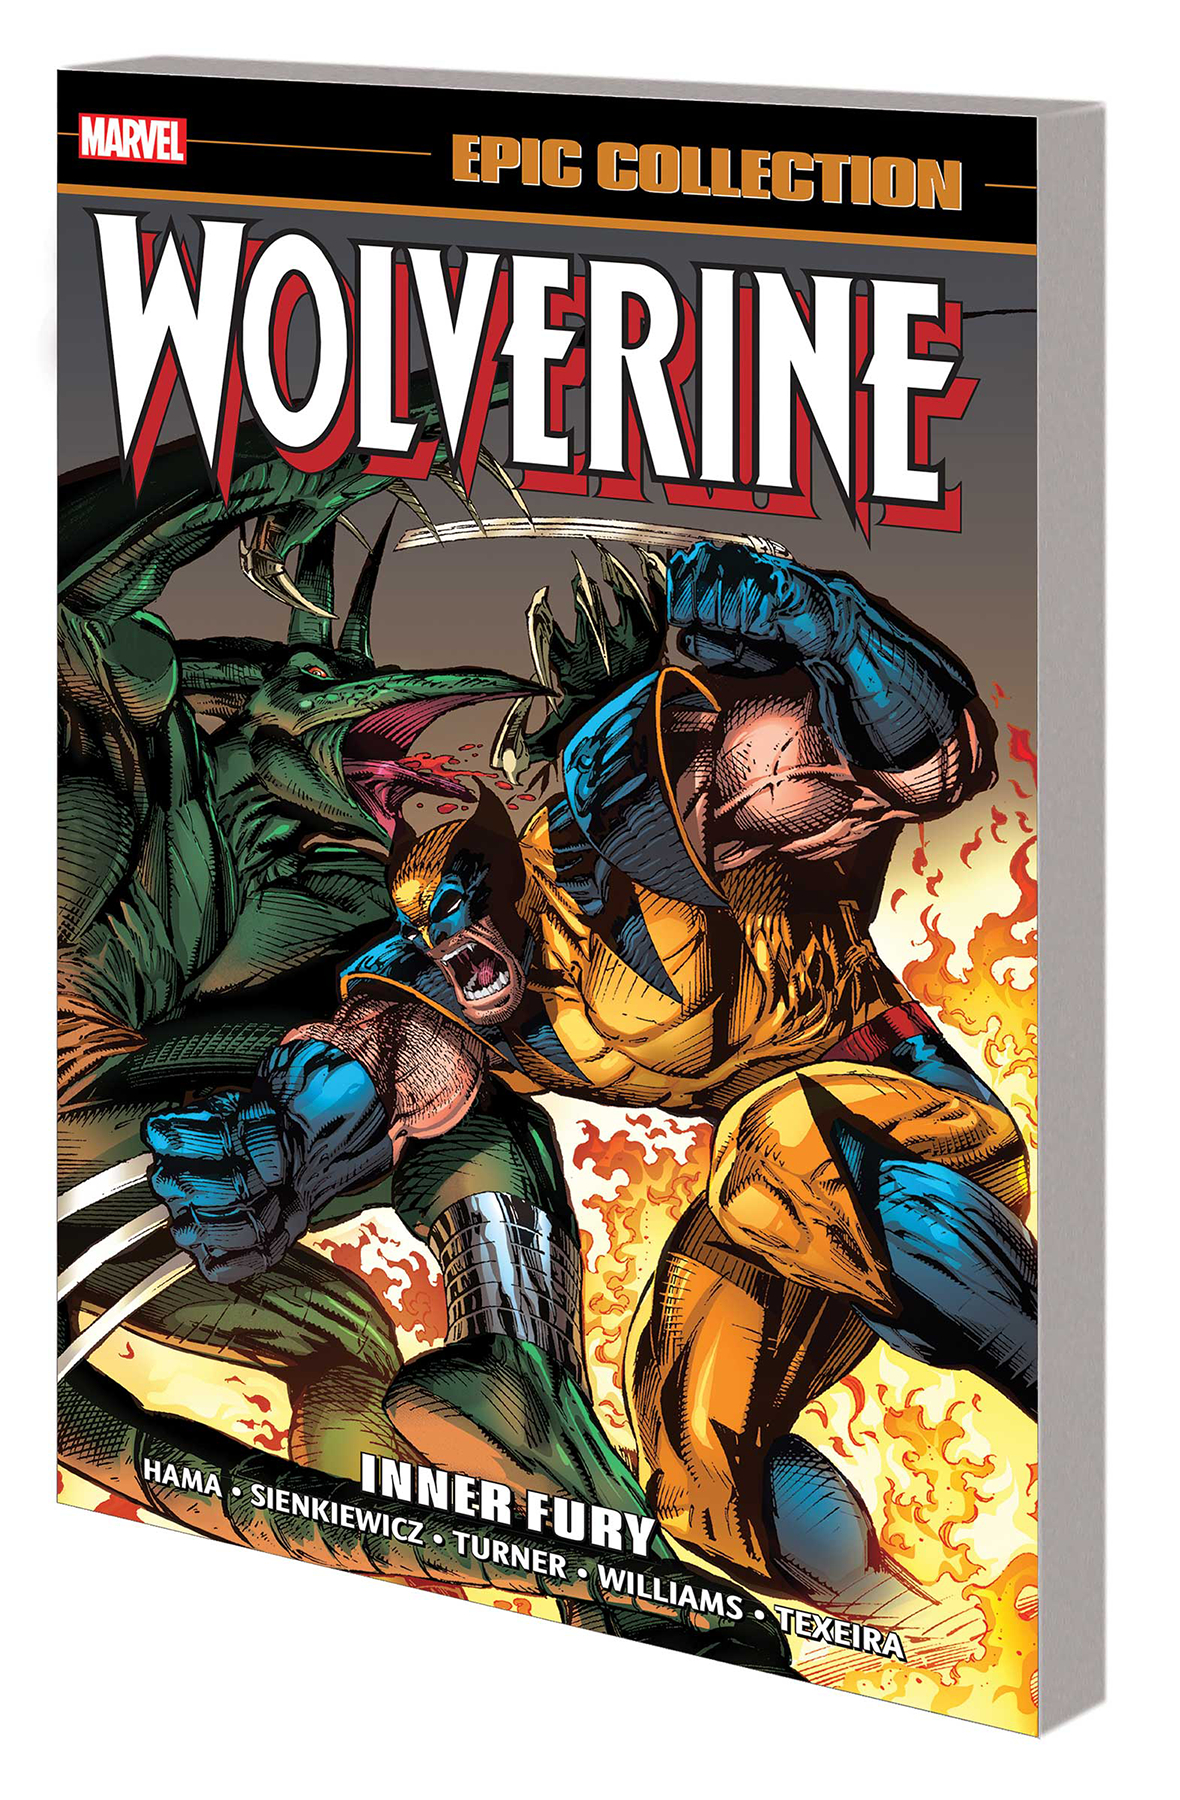 WOLVERINE EPIC COLLECTION (06) TP INNER FURY [#69-75]